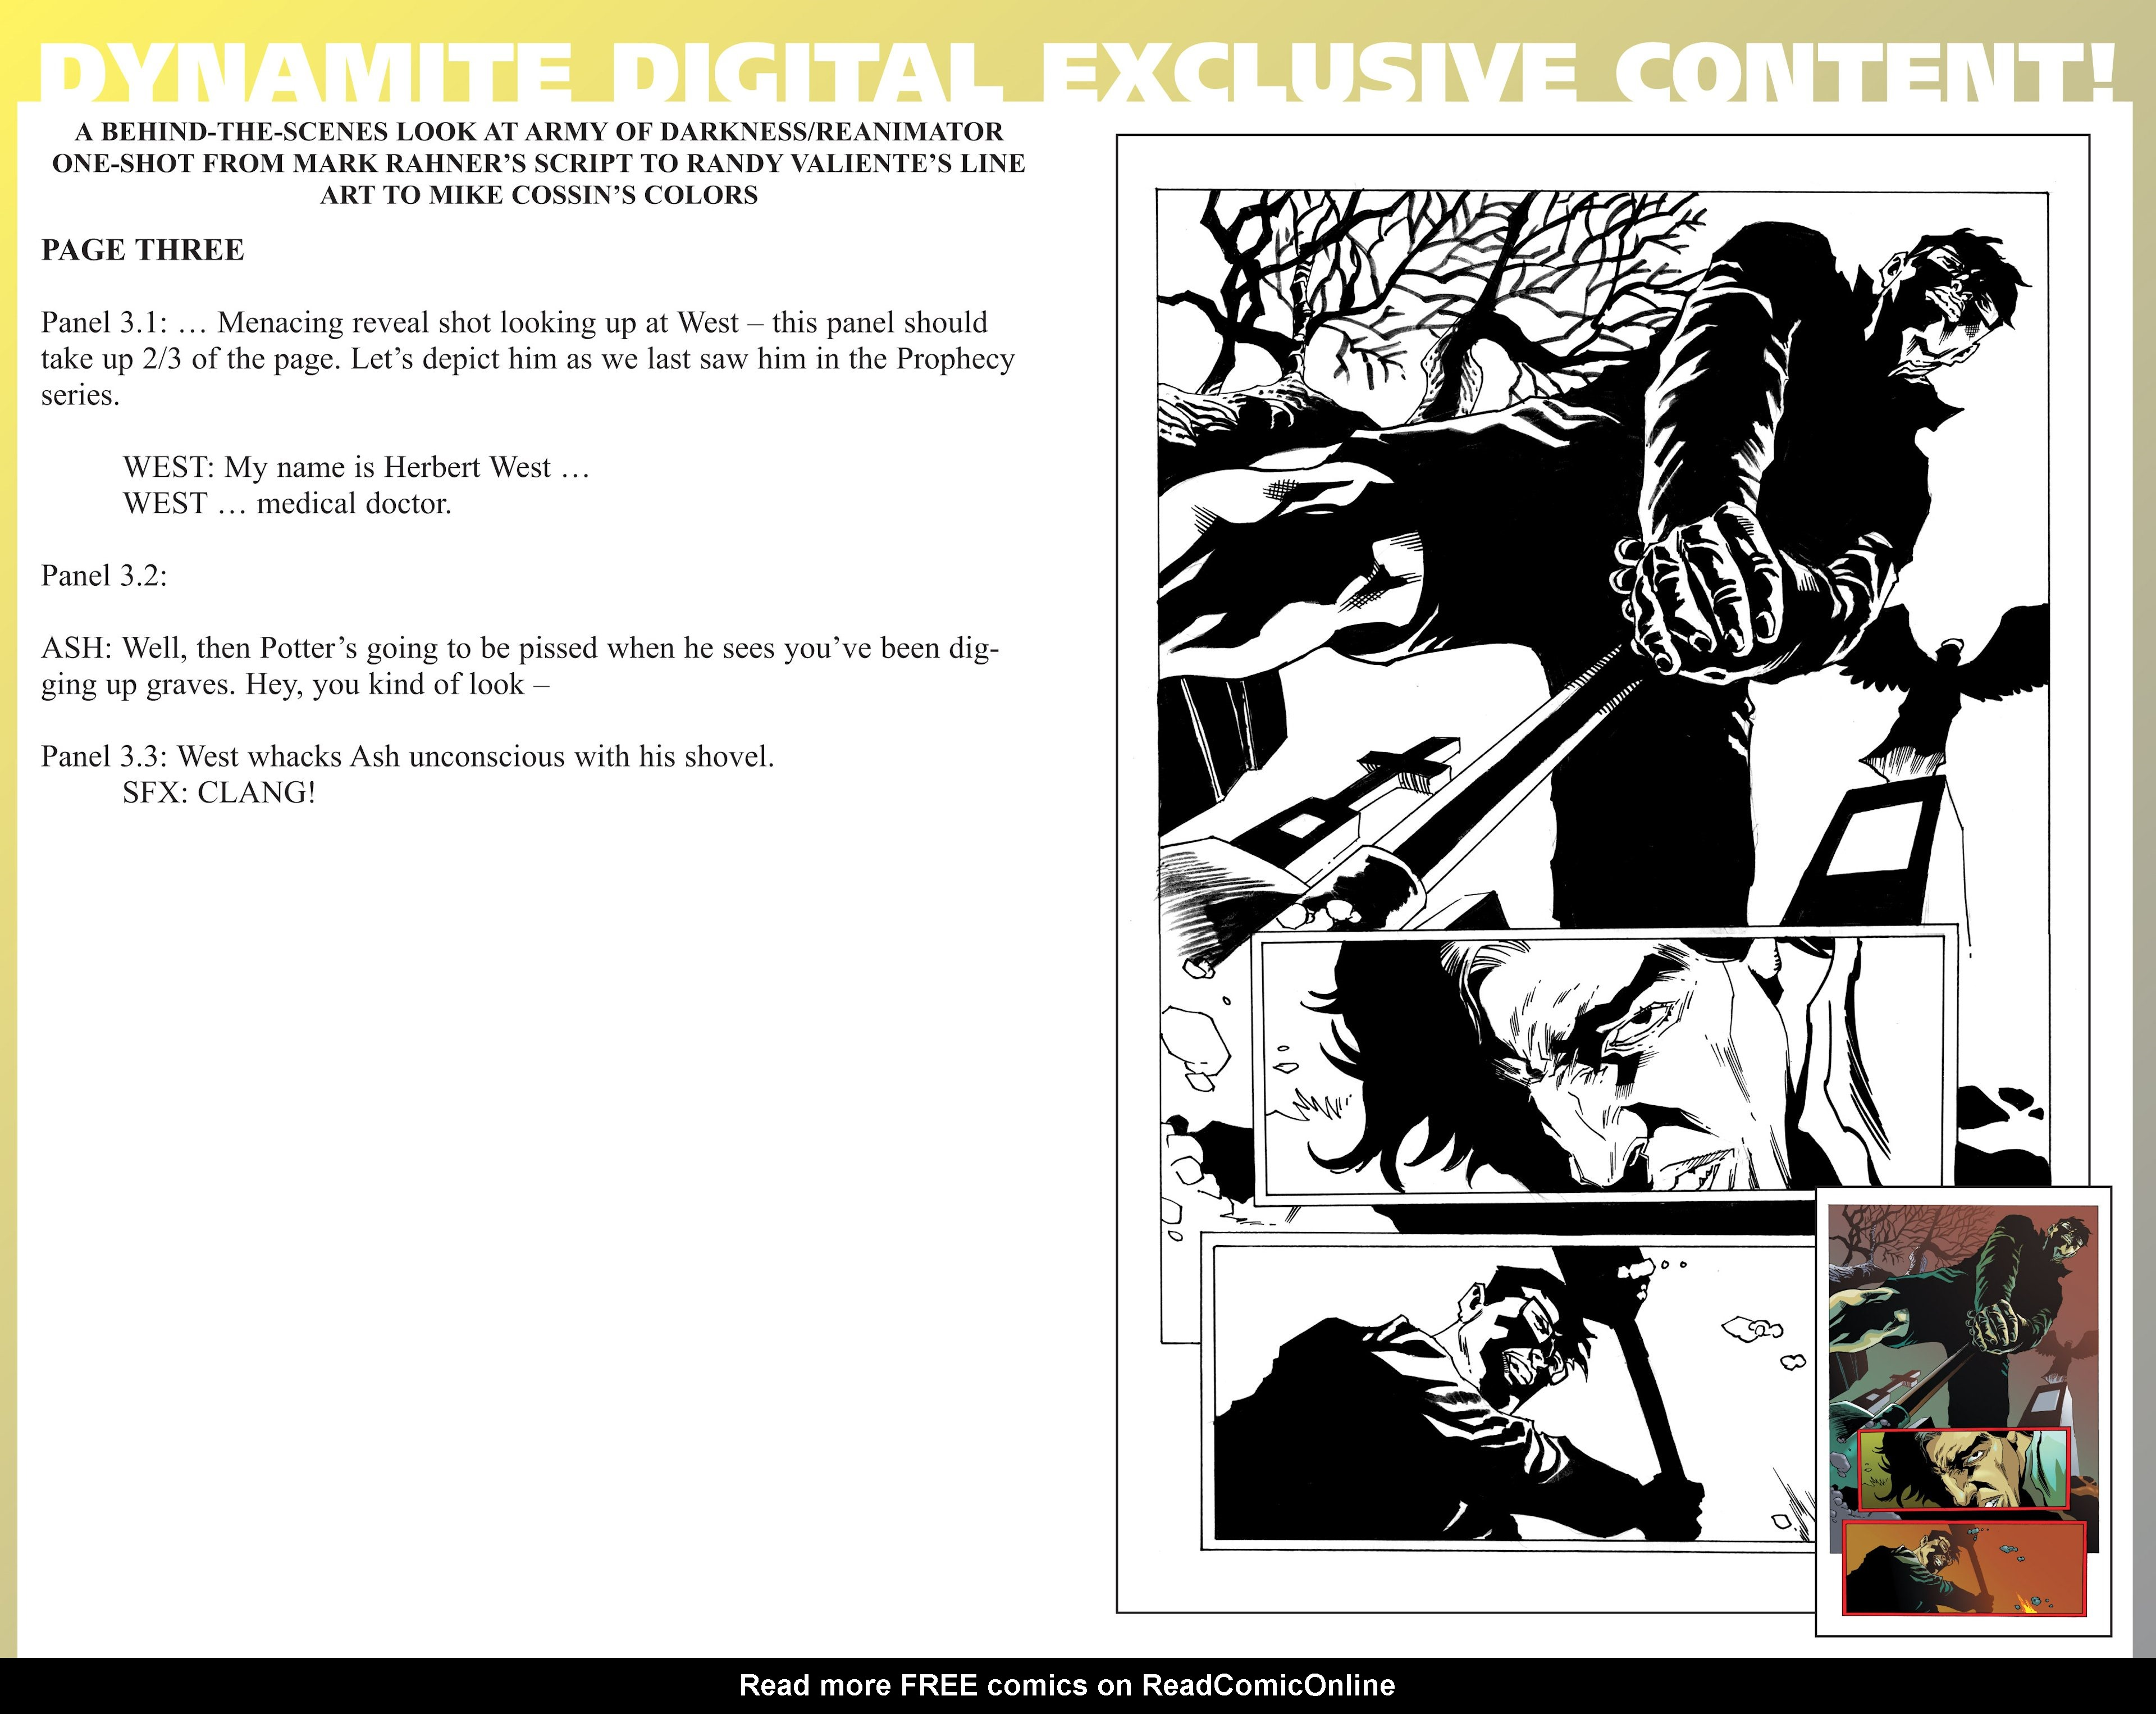 Read online Army of Darkness/Reanimator comic -  Issue #Army of Darkness/Reanimator Full - 45